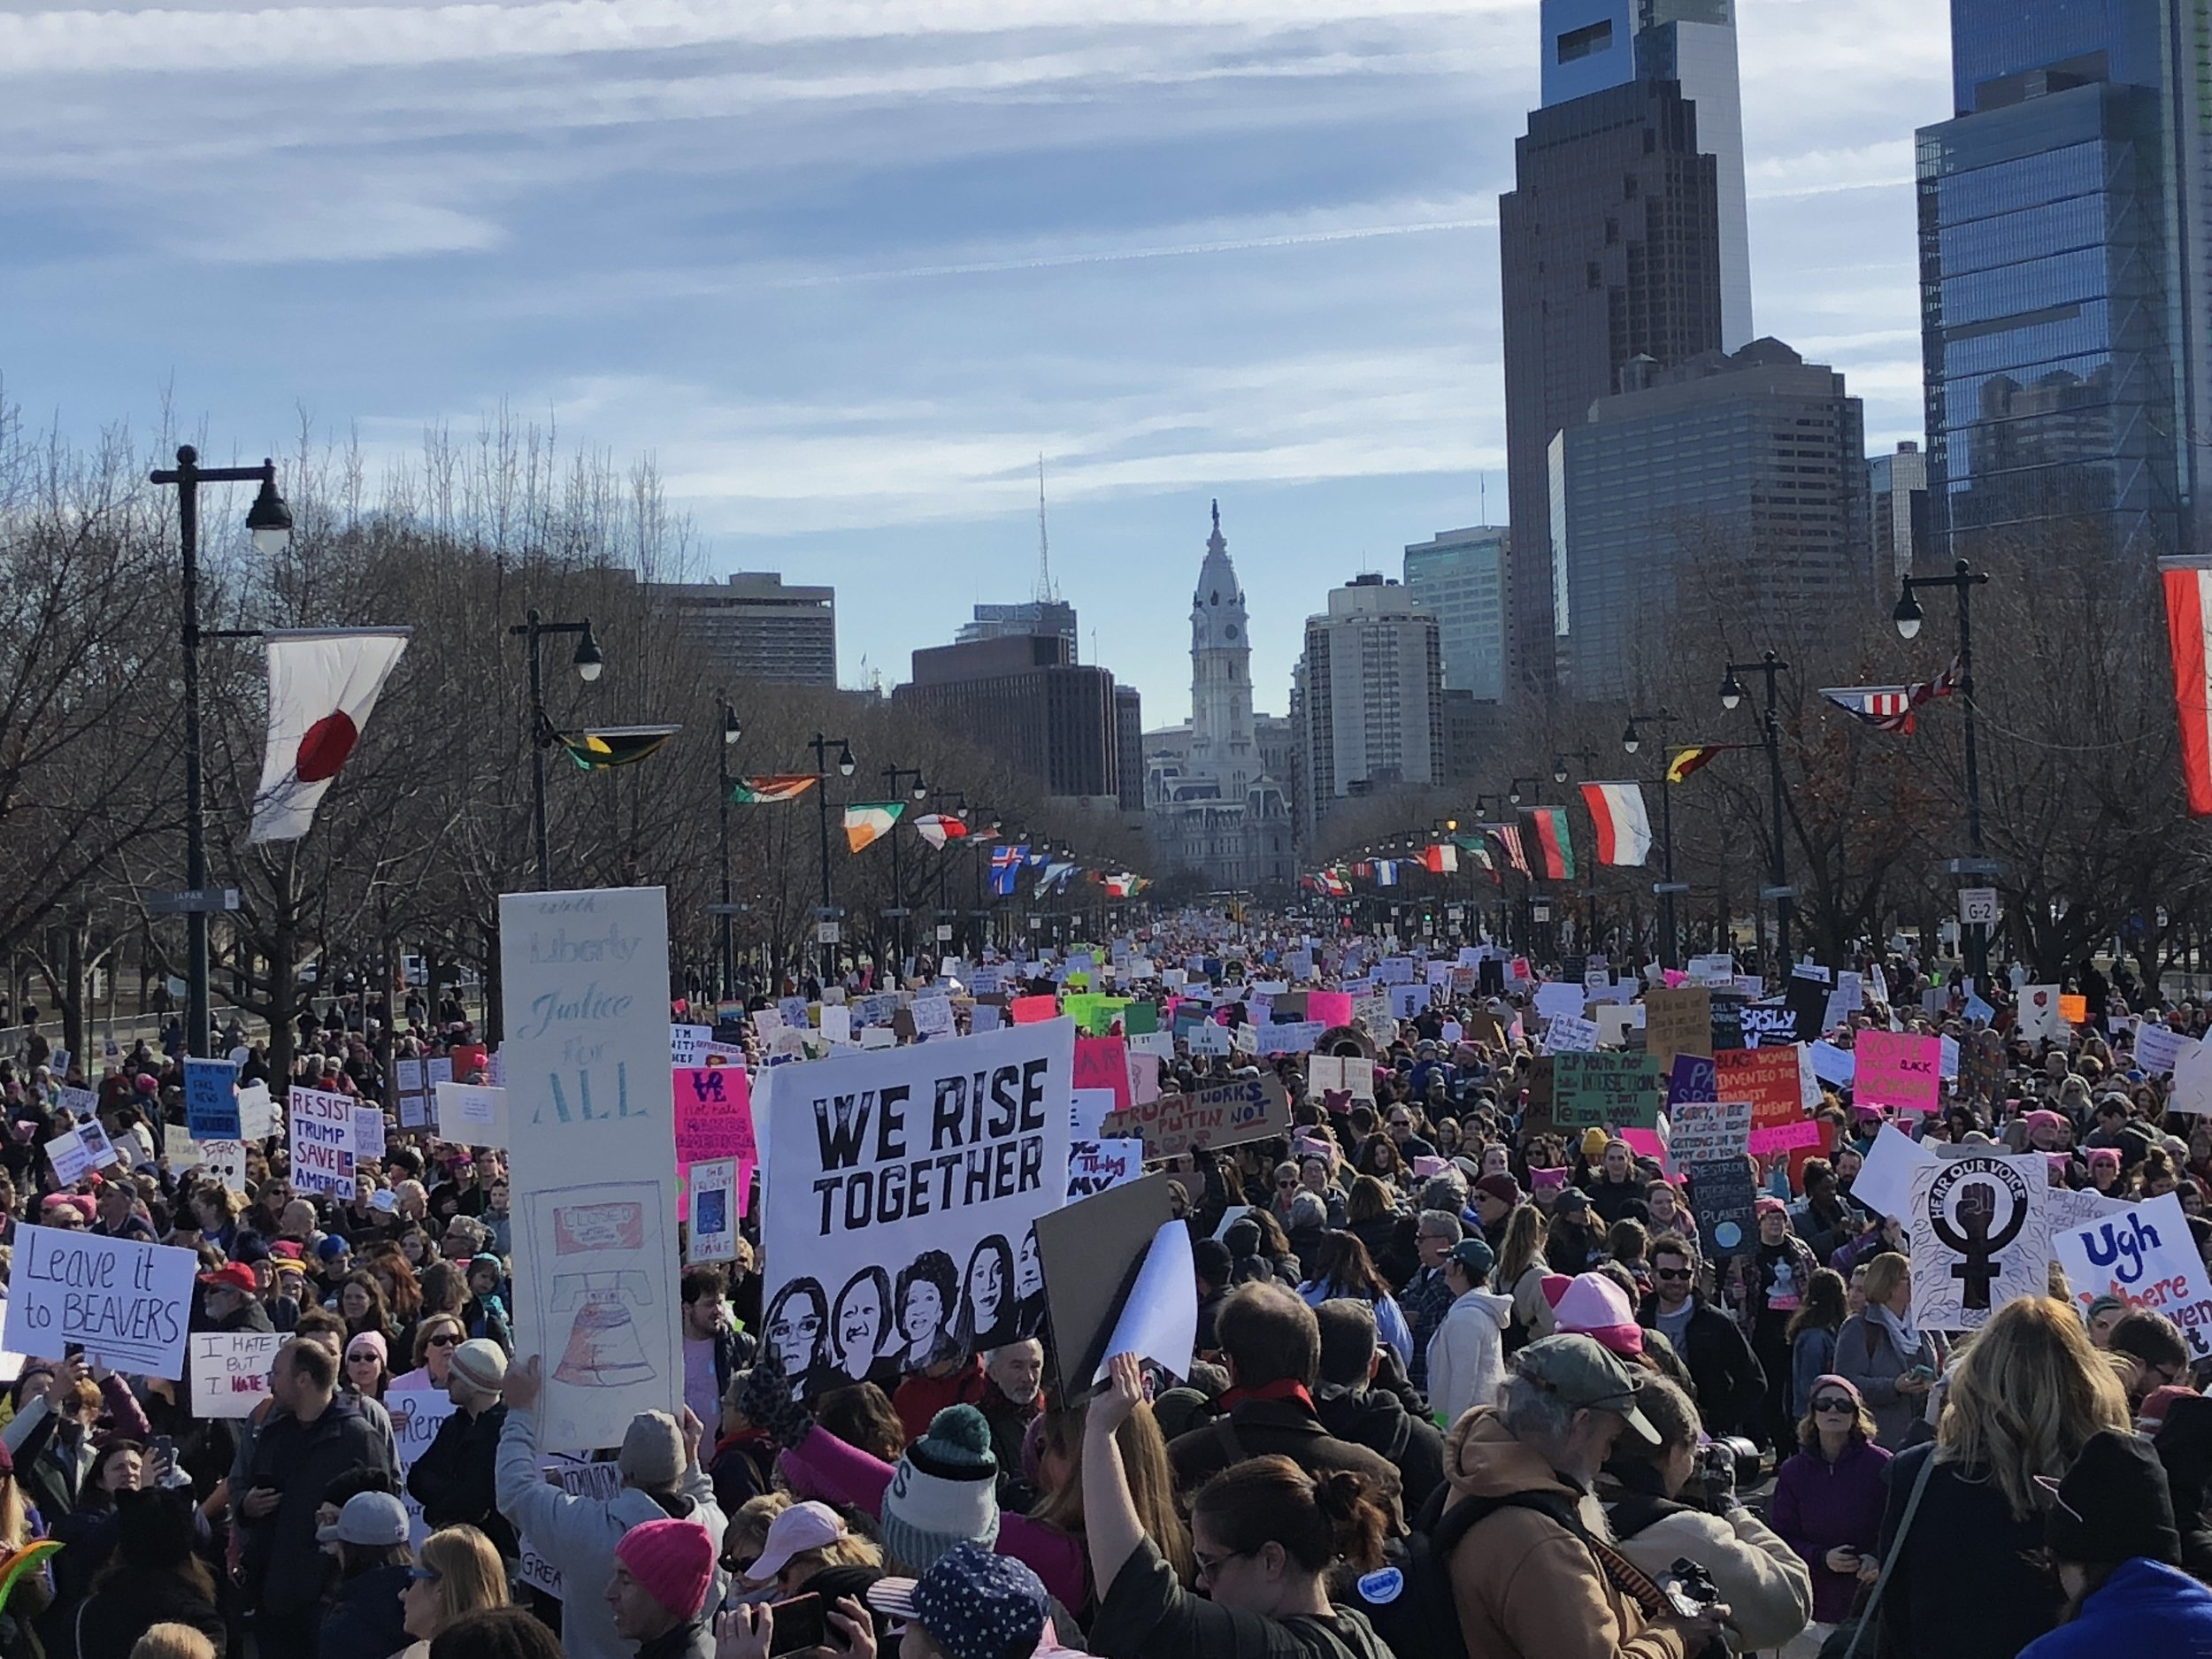 On January 20, 2018, members of H-CAN joined thousands on the Benjamin Franklin Parkway at the Philadelphia Women's March.